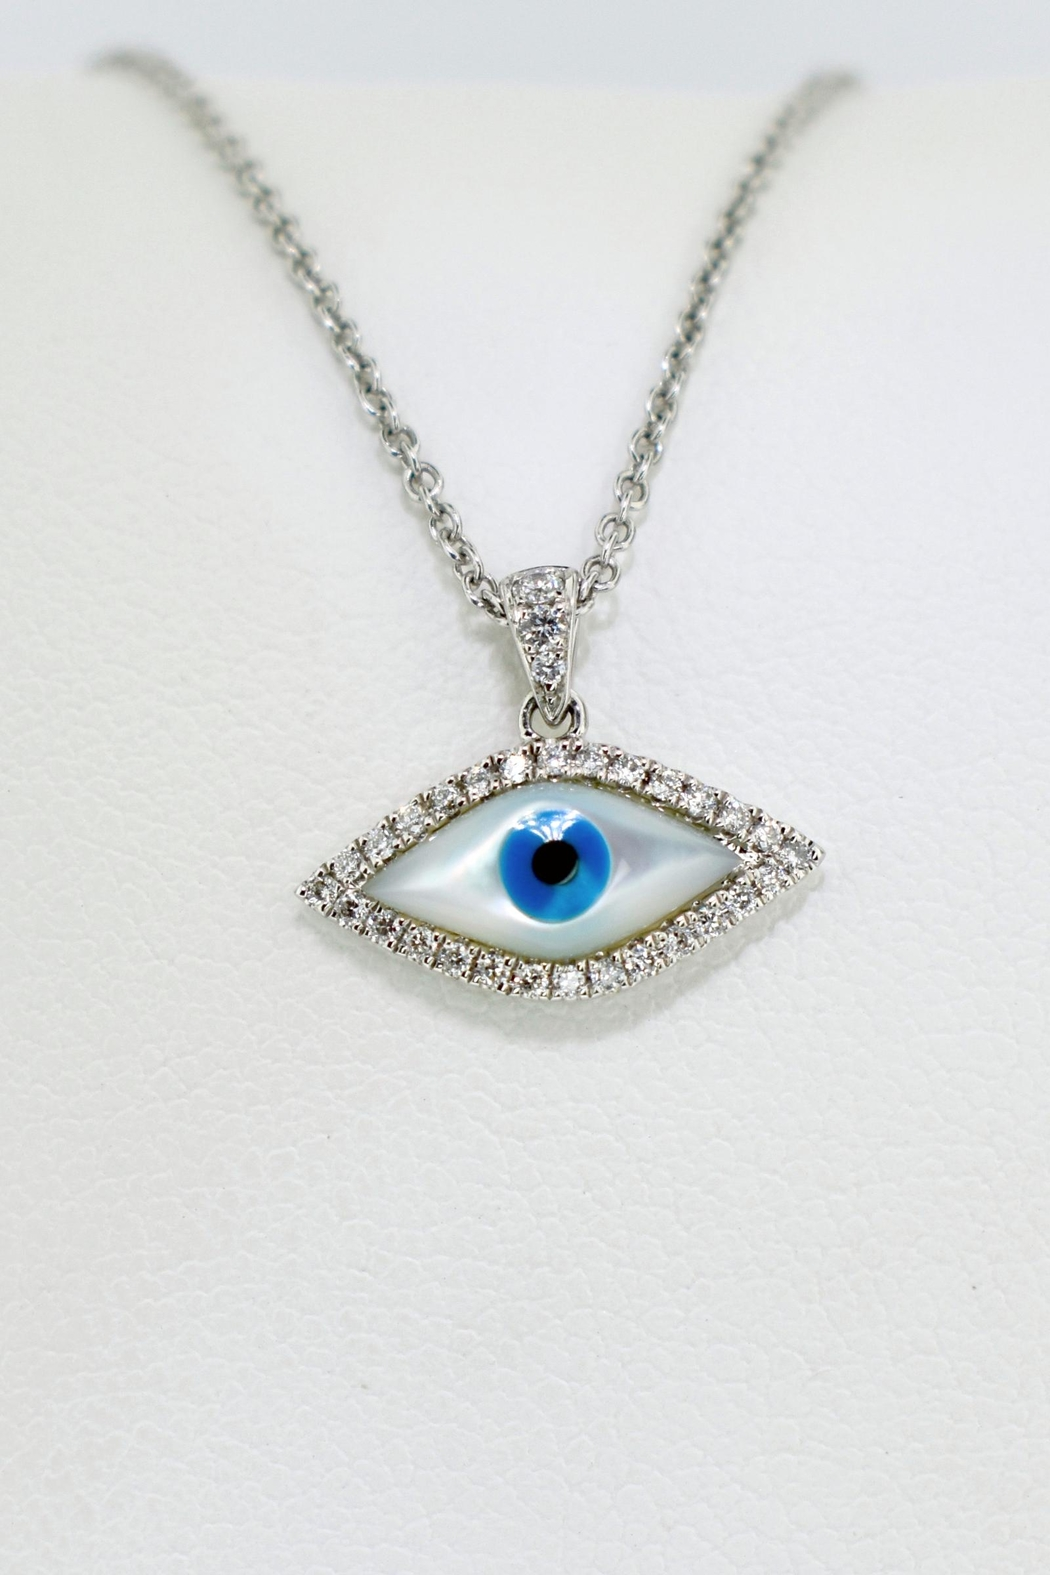 sapphire good evil pfs necklace colored luck bling silver blue evileye jewelry cz eye